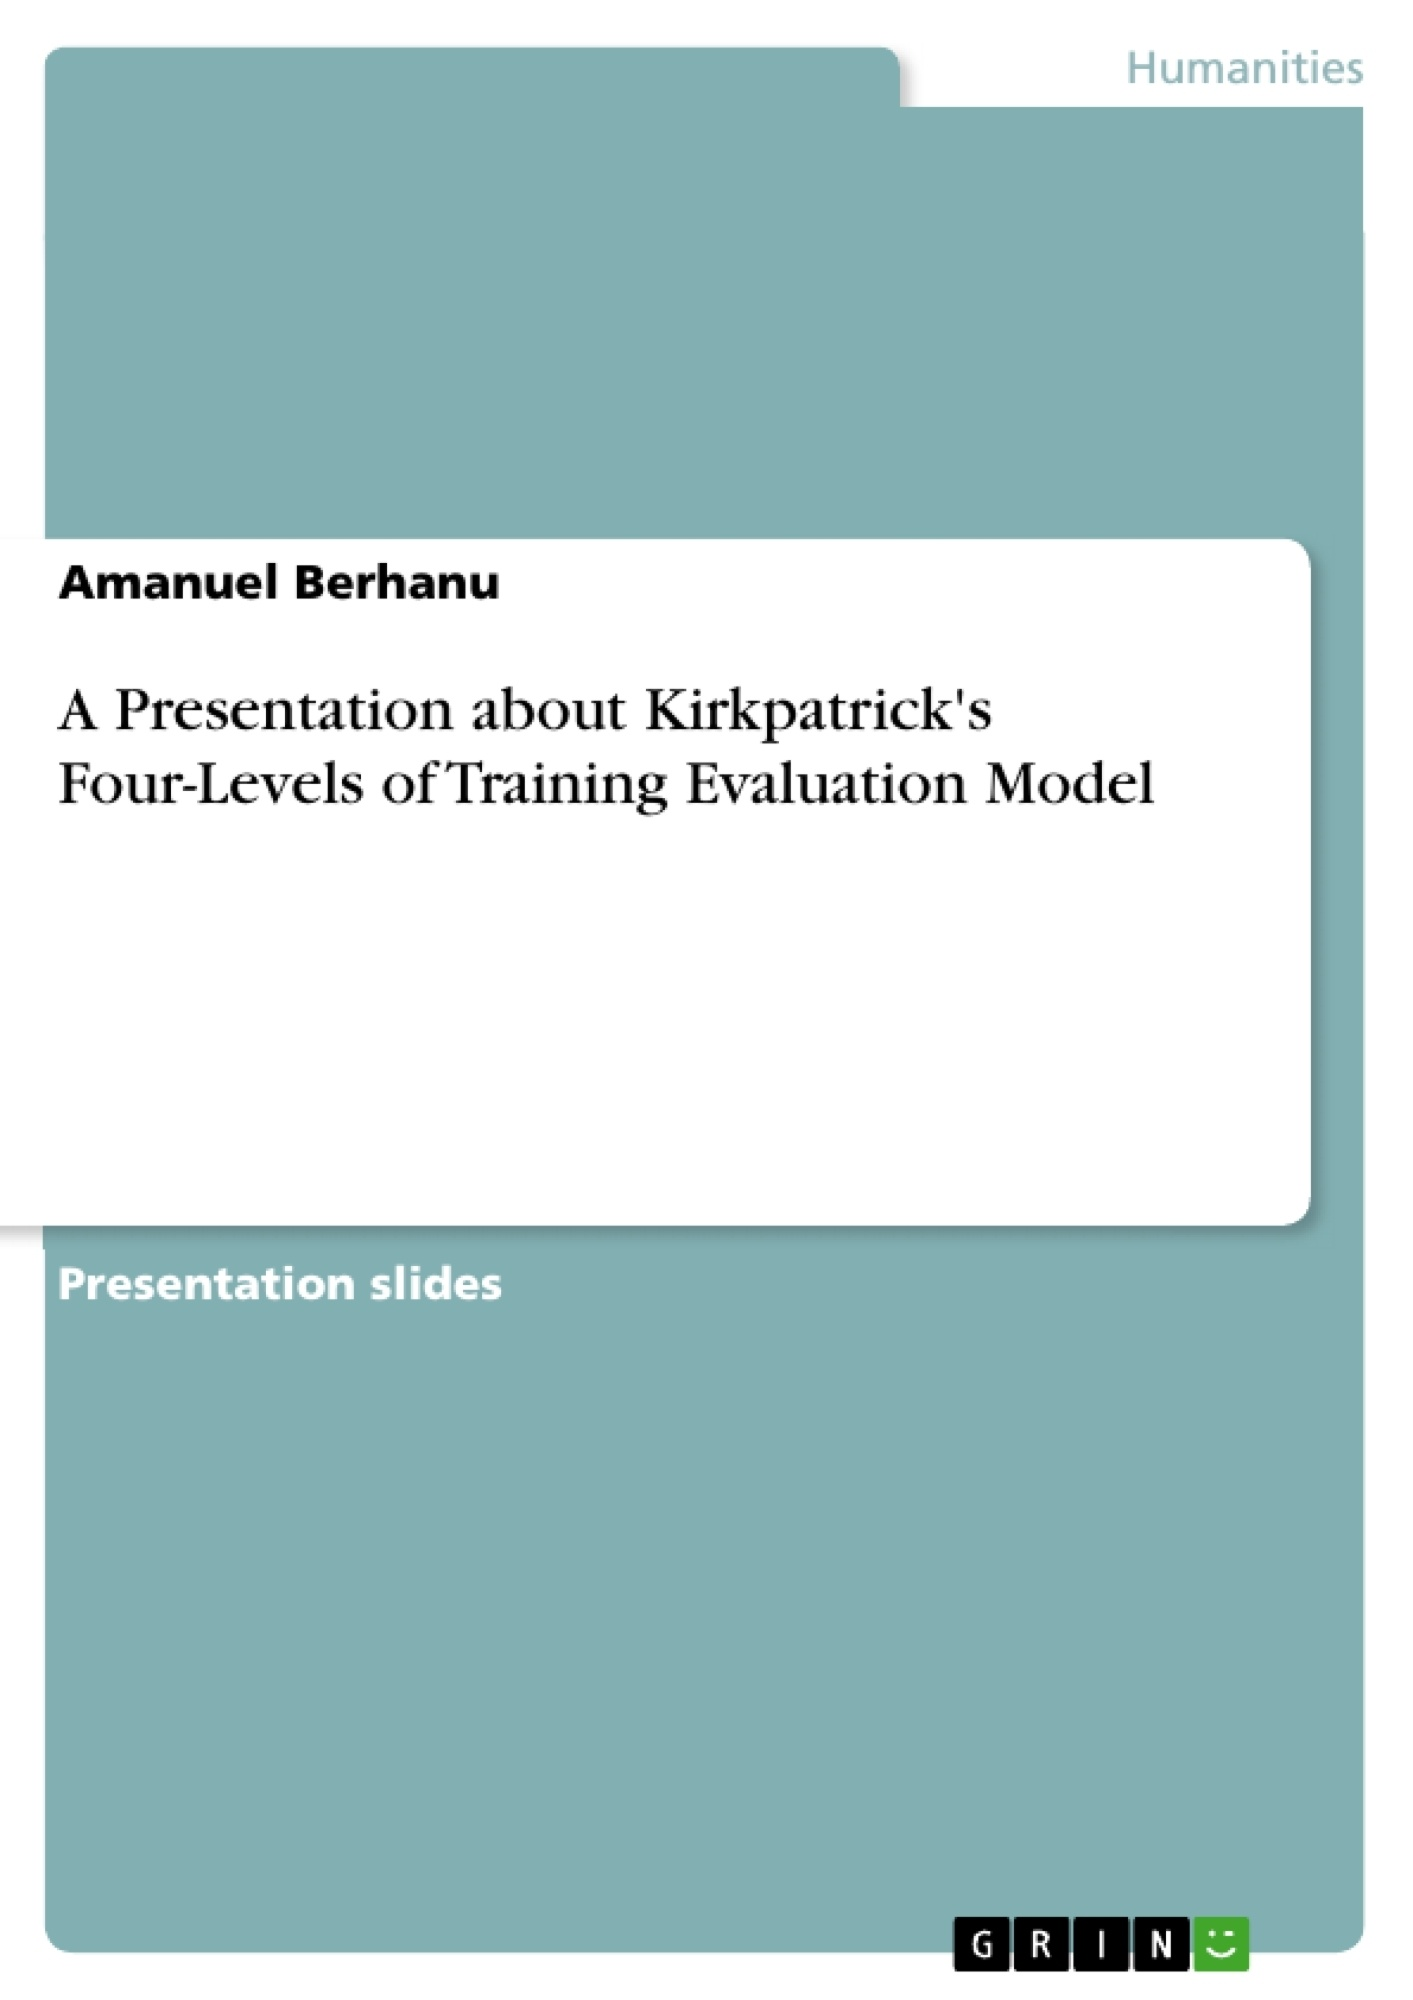 Title: A Presentation about Kirkpatrick's Four-Levels of Training Evaluation Model